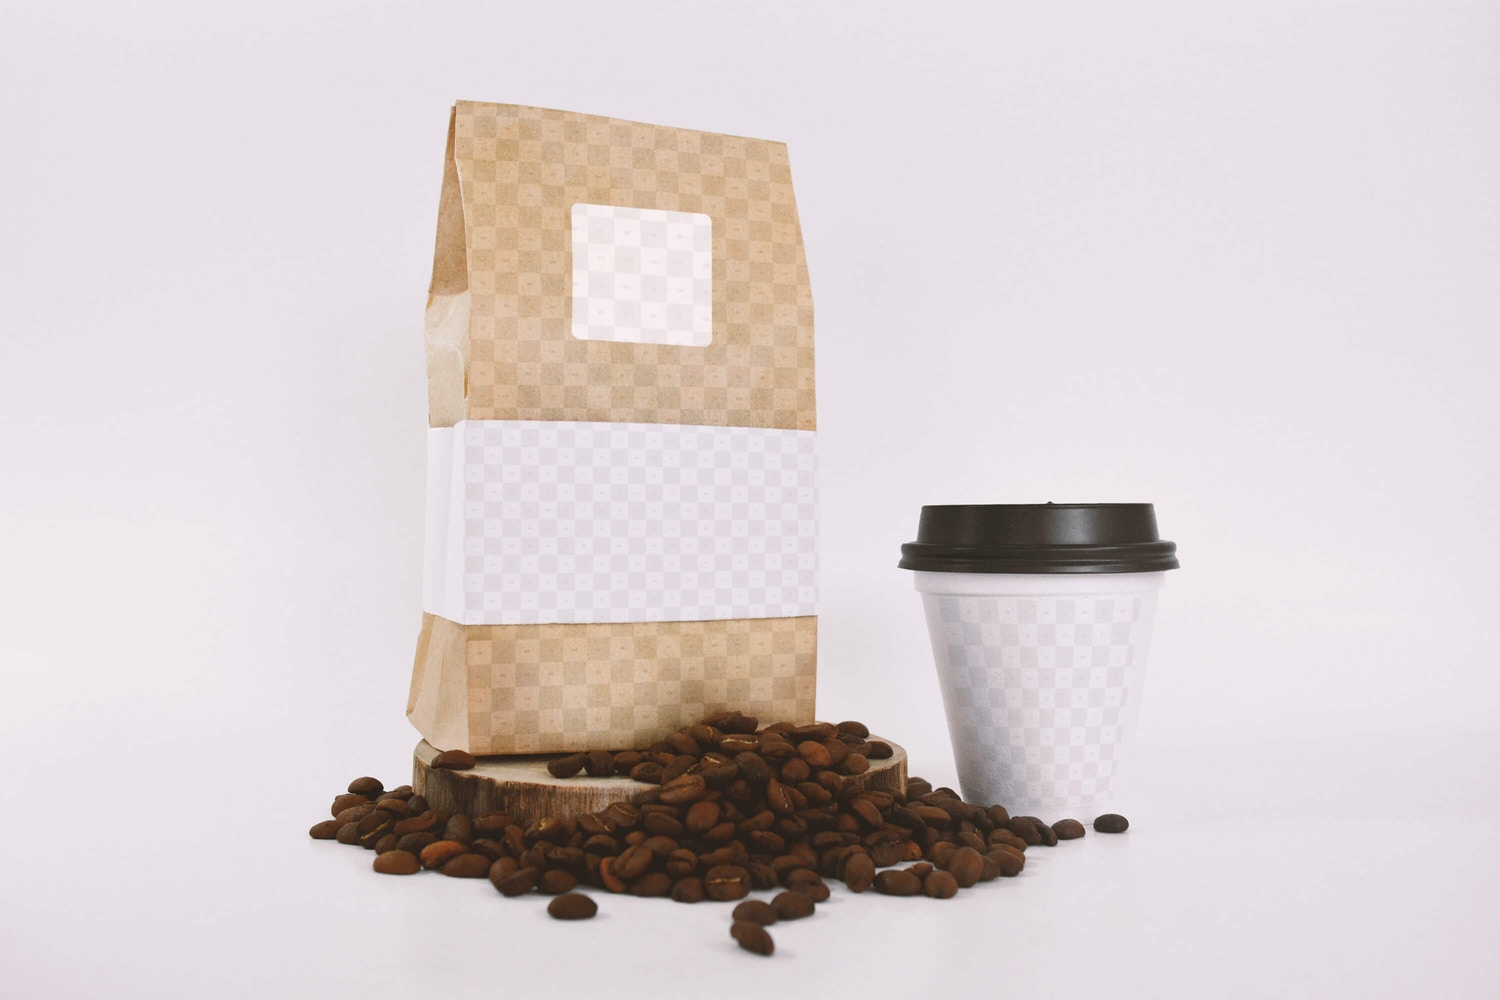 Coffee Bag and Sealed Cup Mockup (2) by Eduardo Mejia on Original Mockups